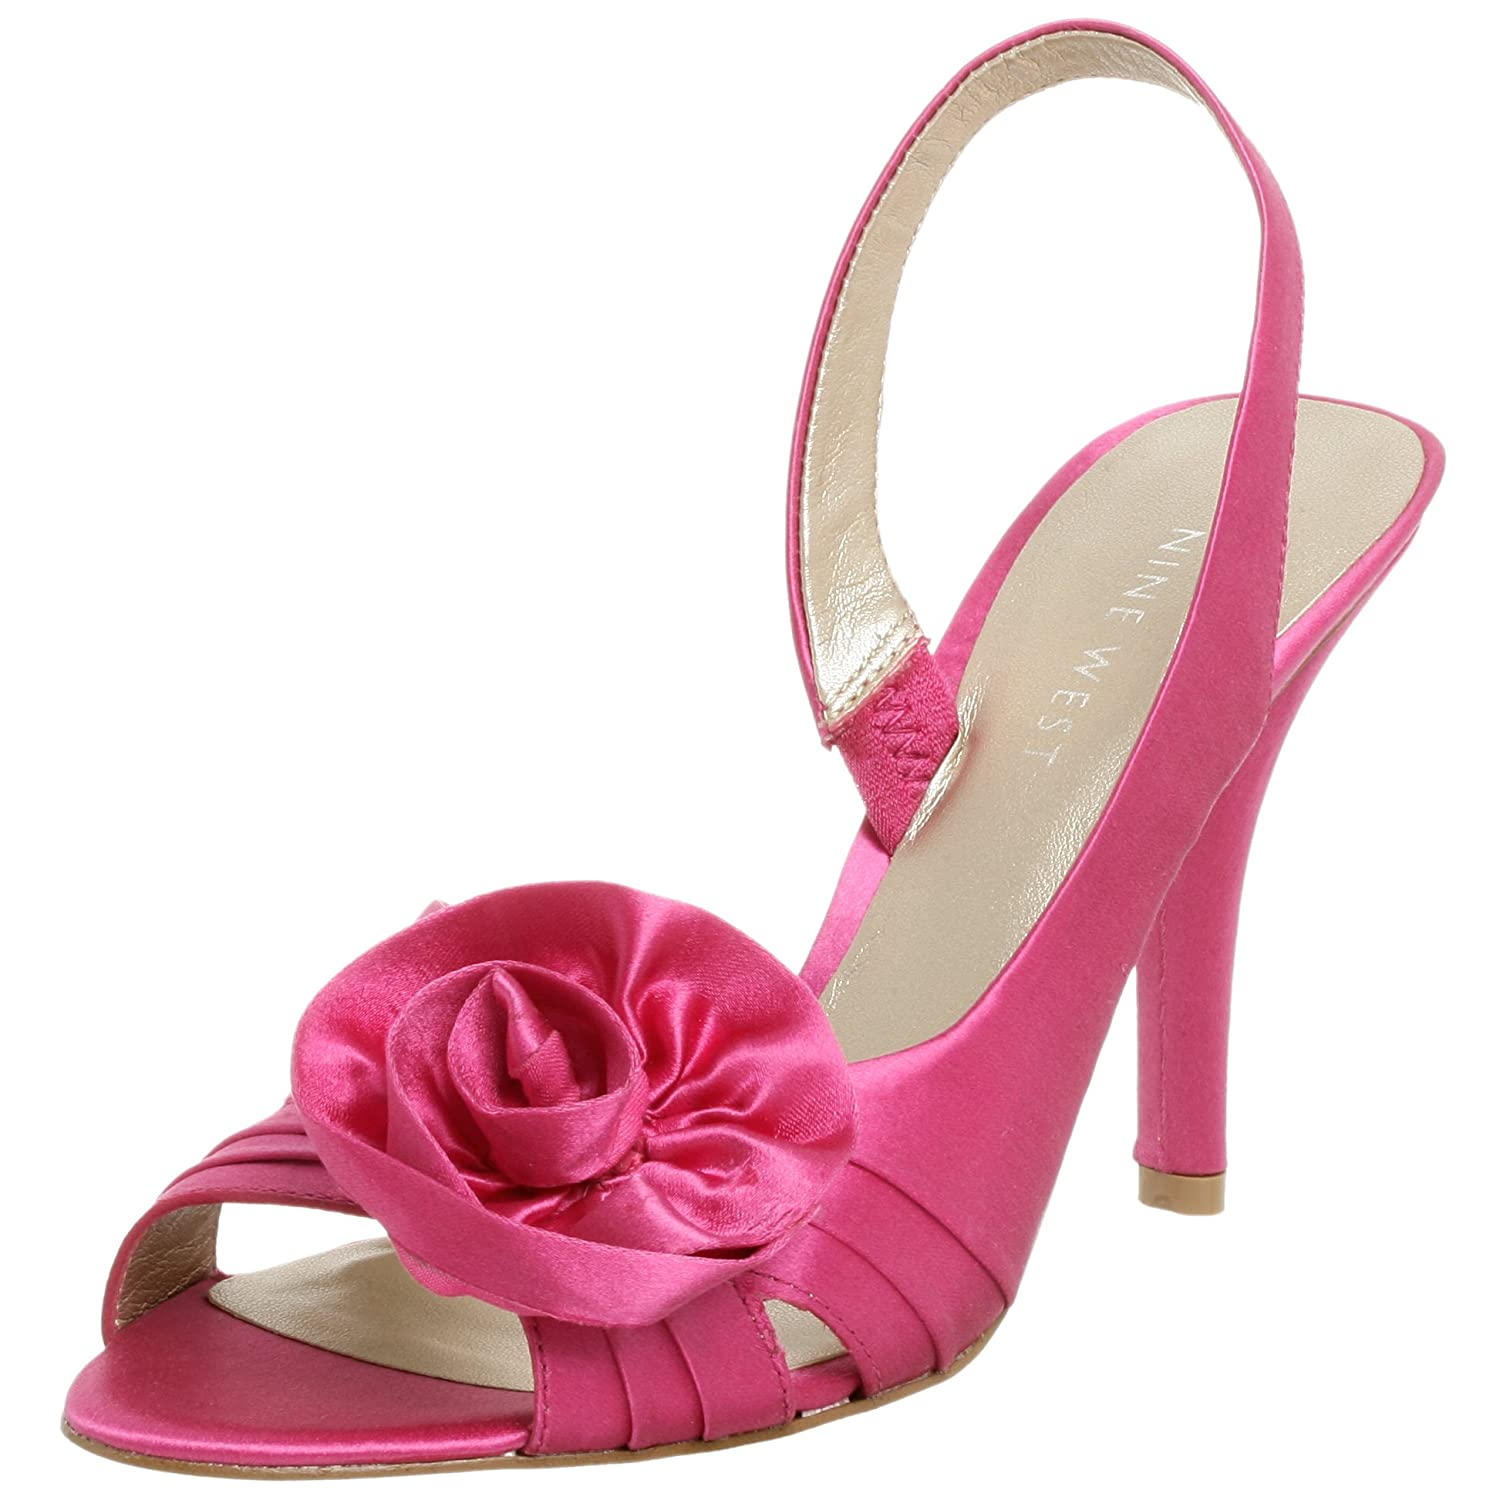 slingback bridal shoes, pink wedding shoes